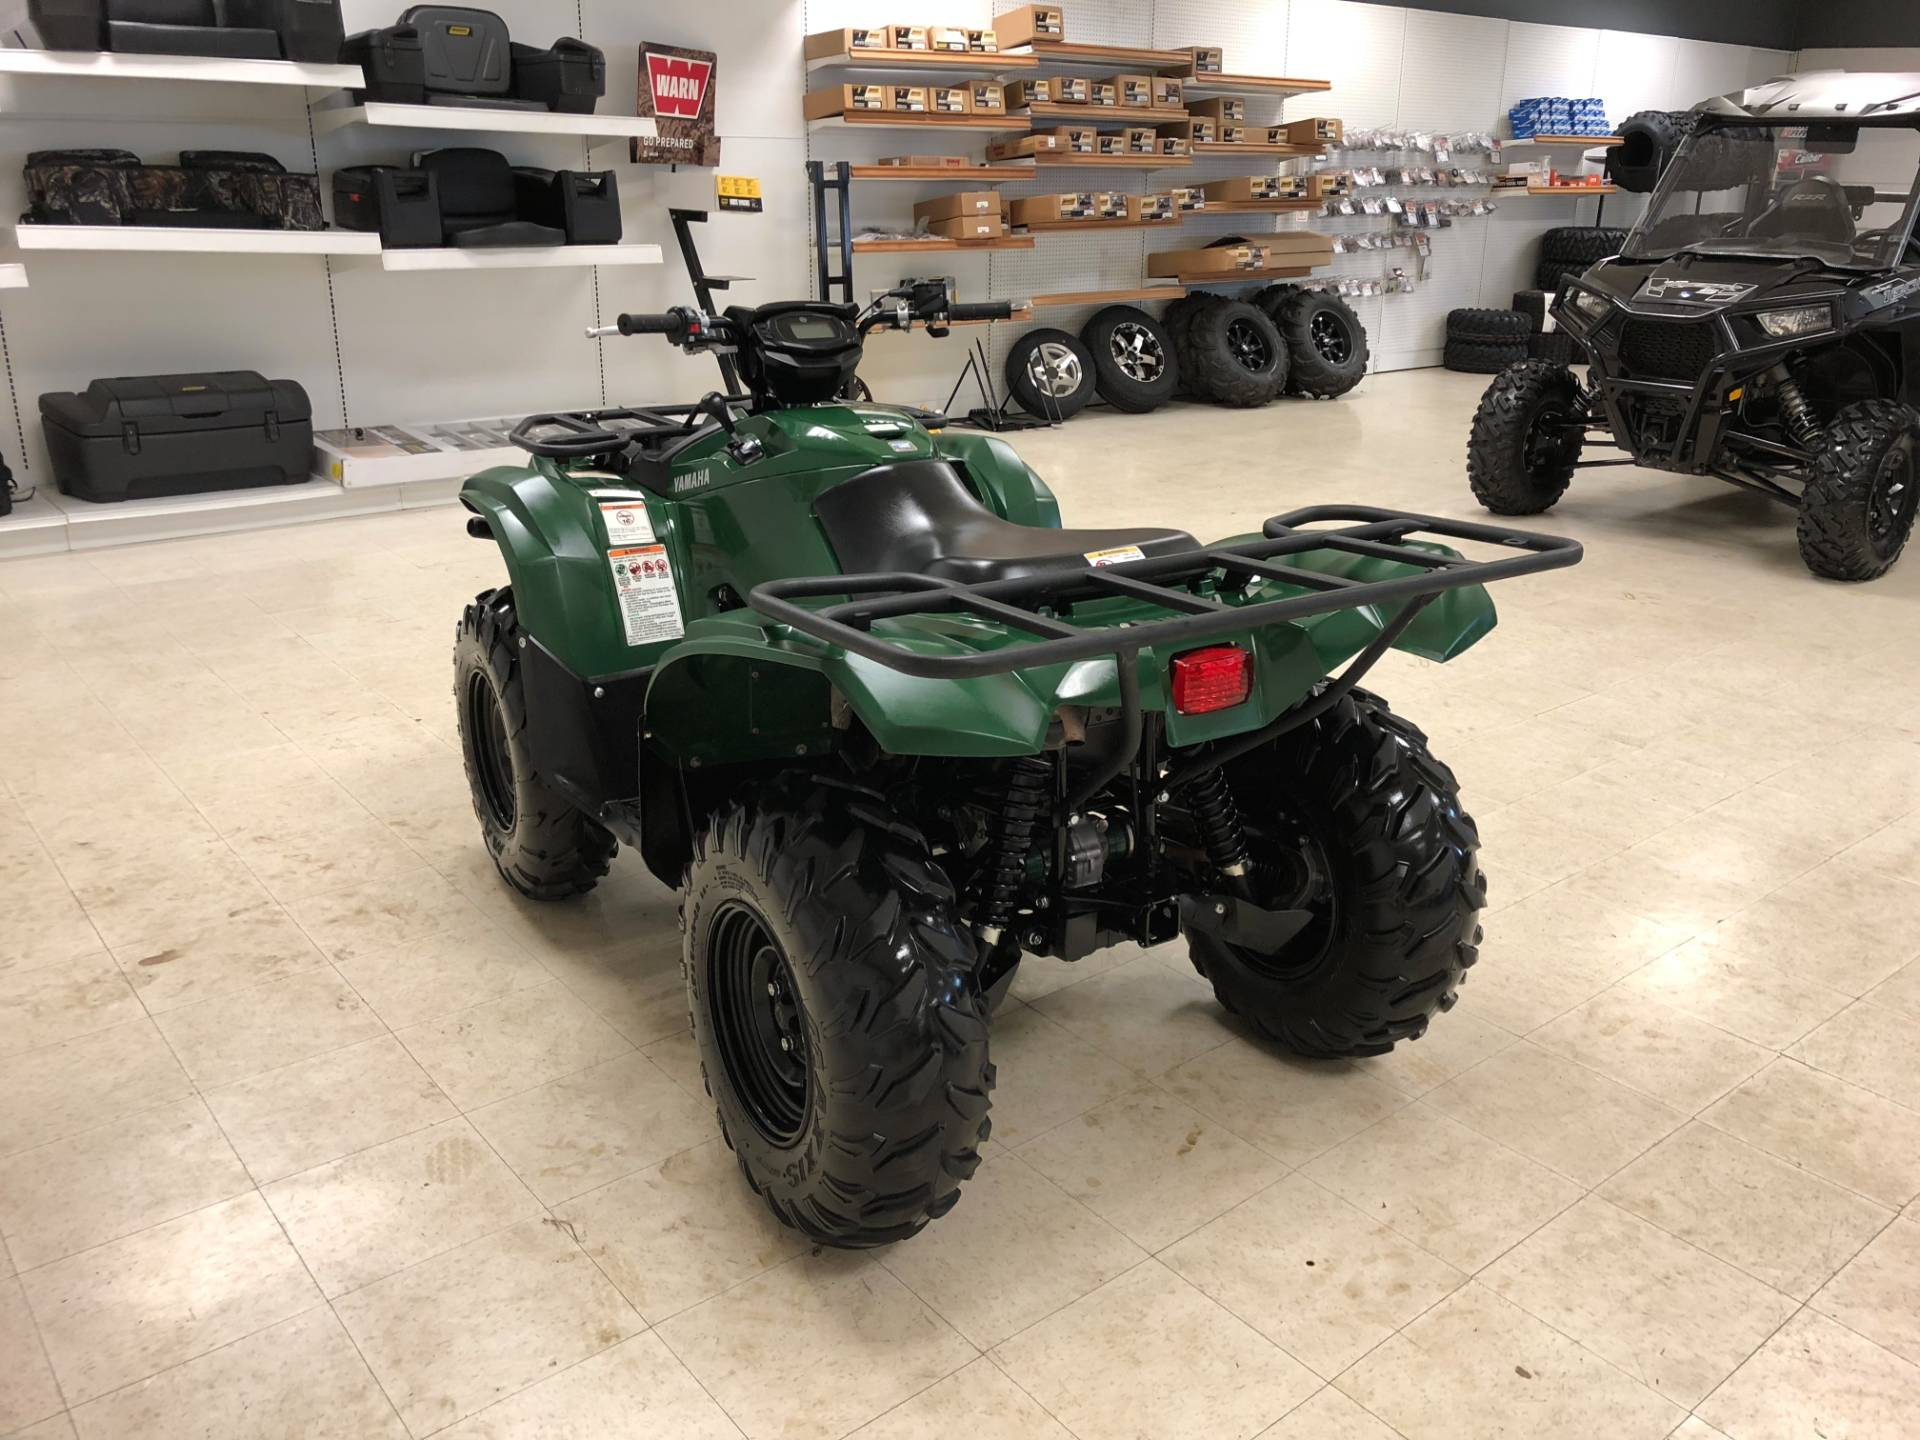 2017 Yamaha Kodiak 700 EPS 5